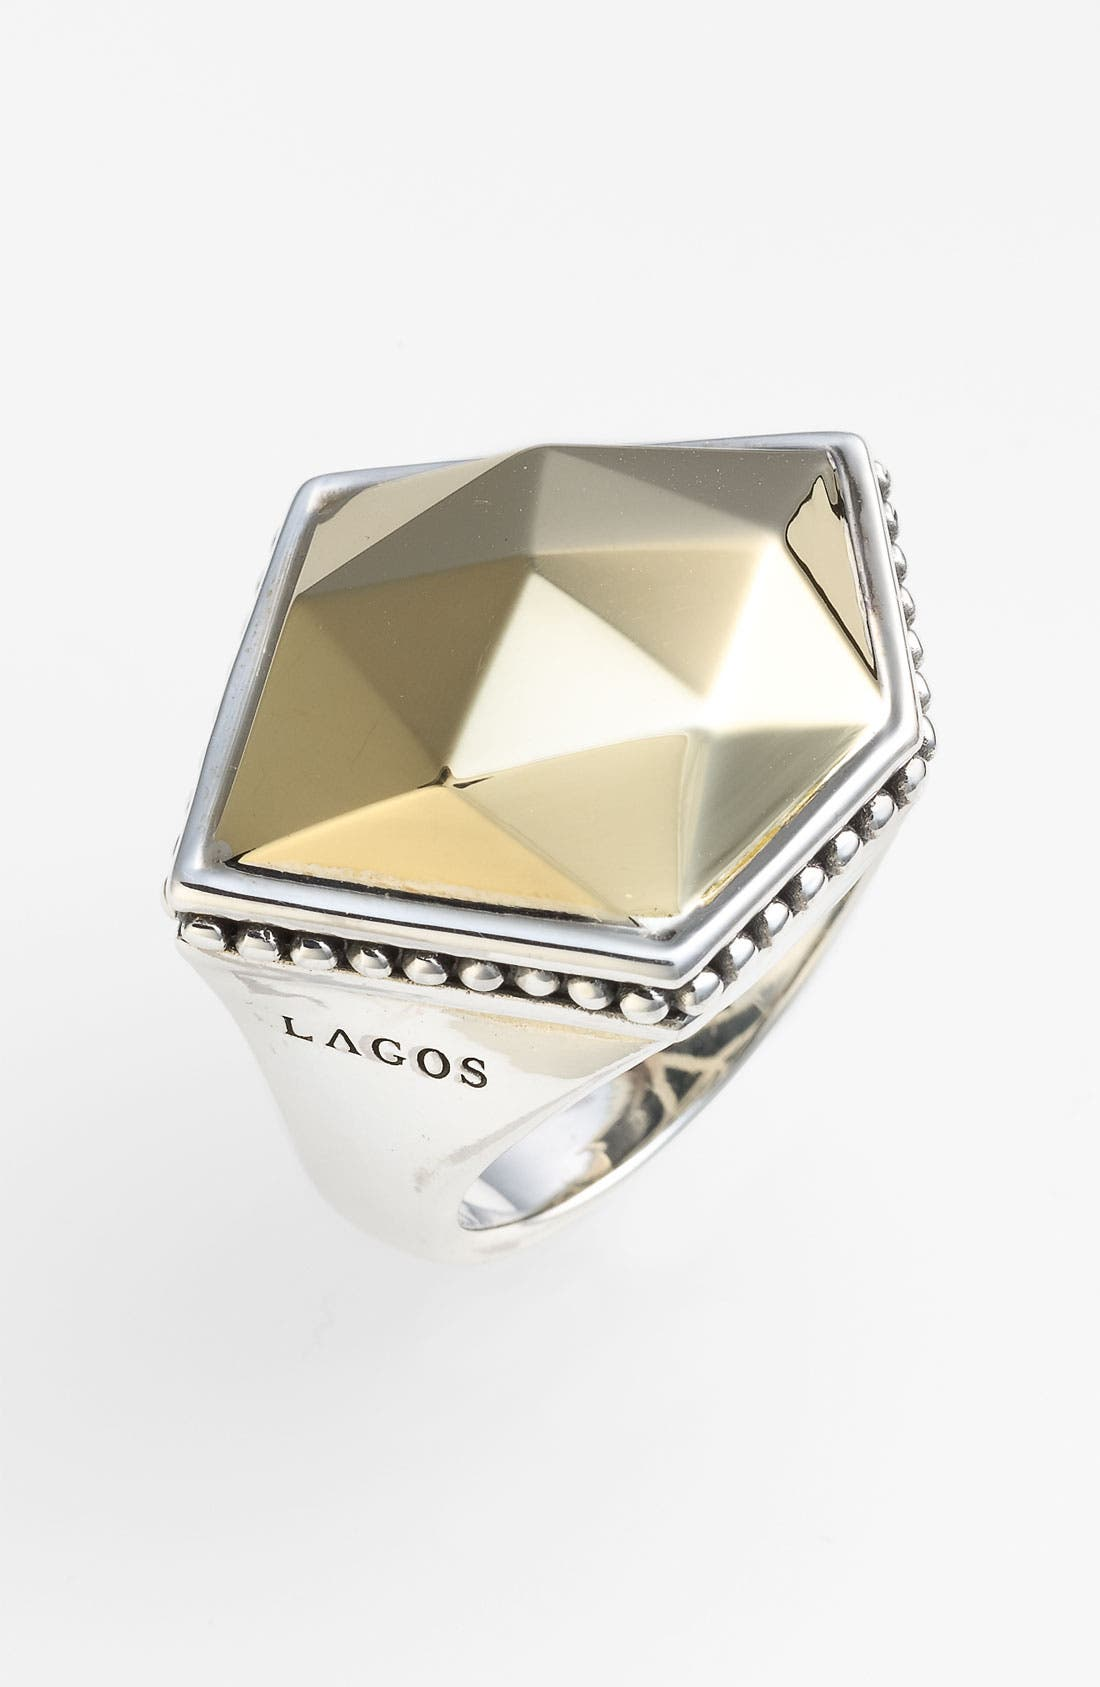 Main Image - LAGOS 'Rocks' Angled Two Tone Ring